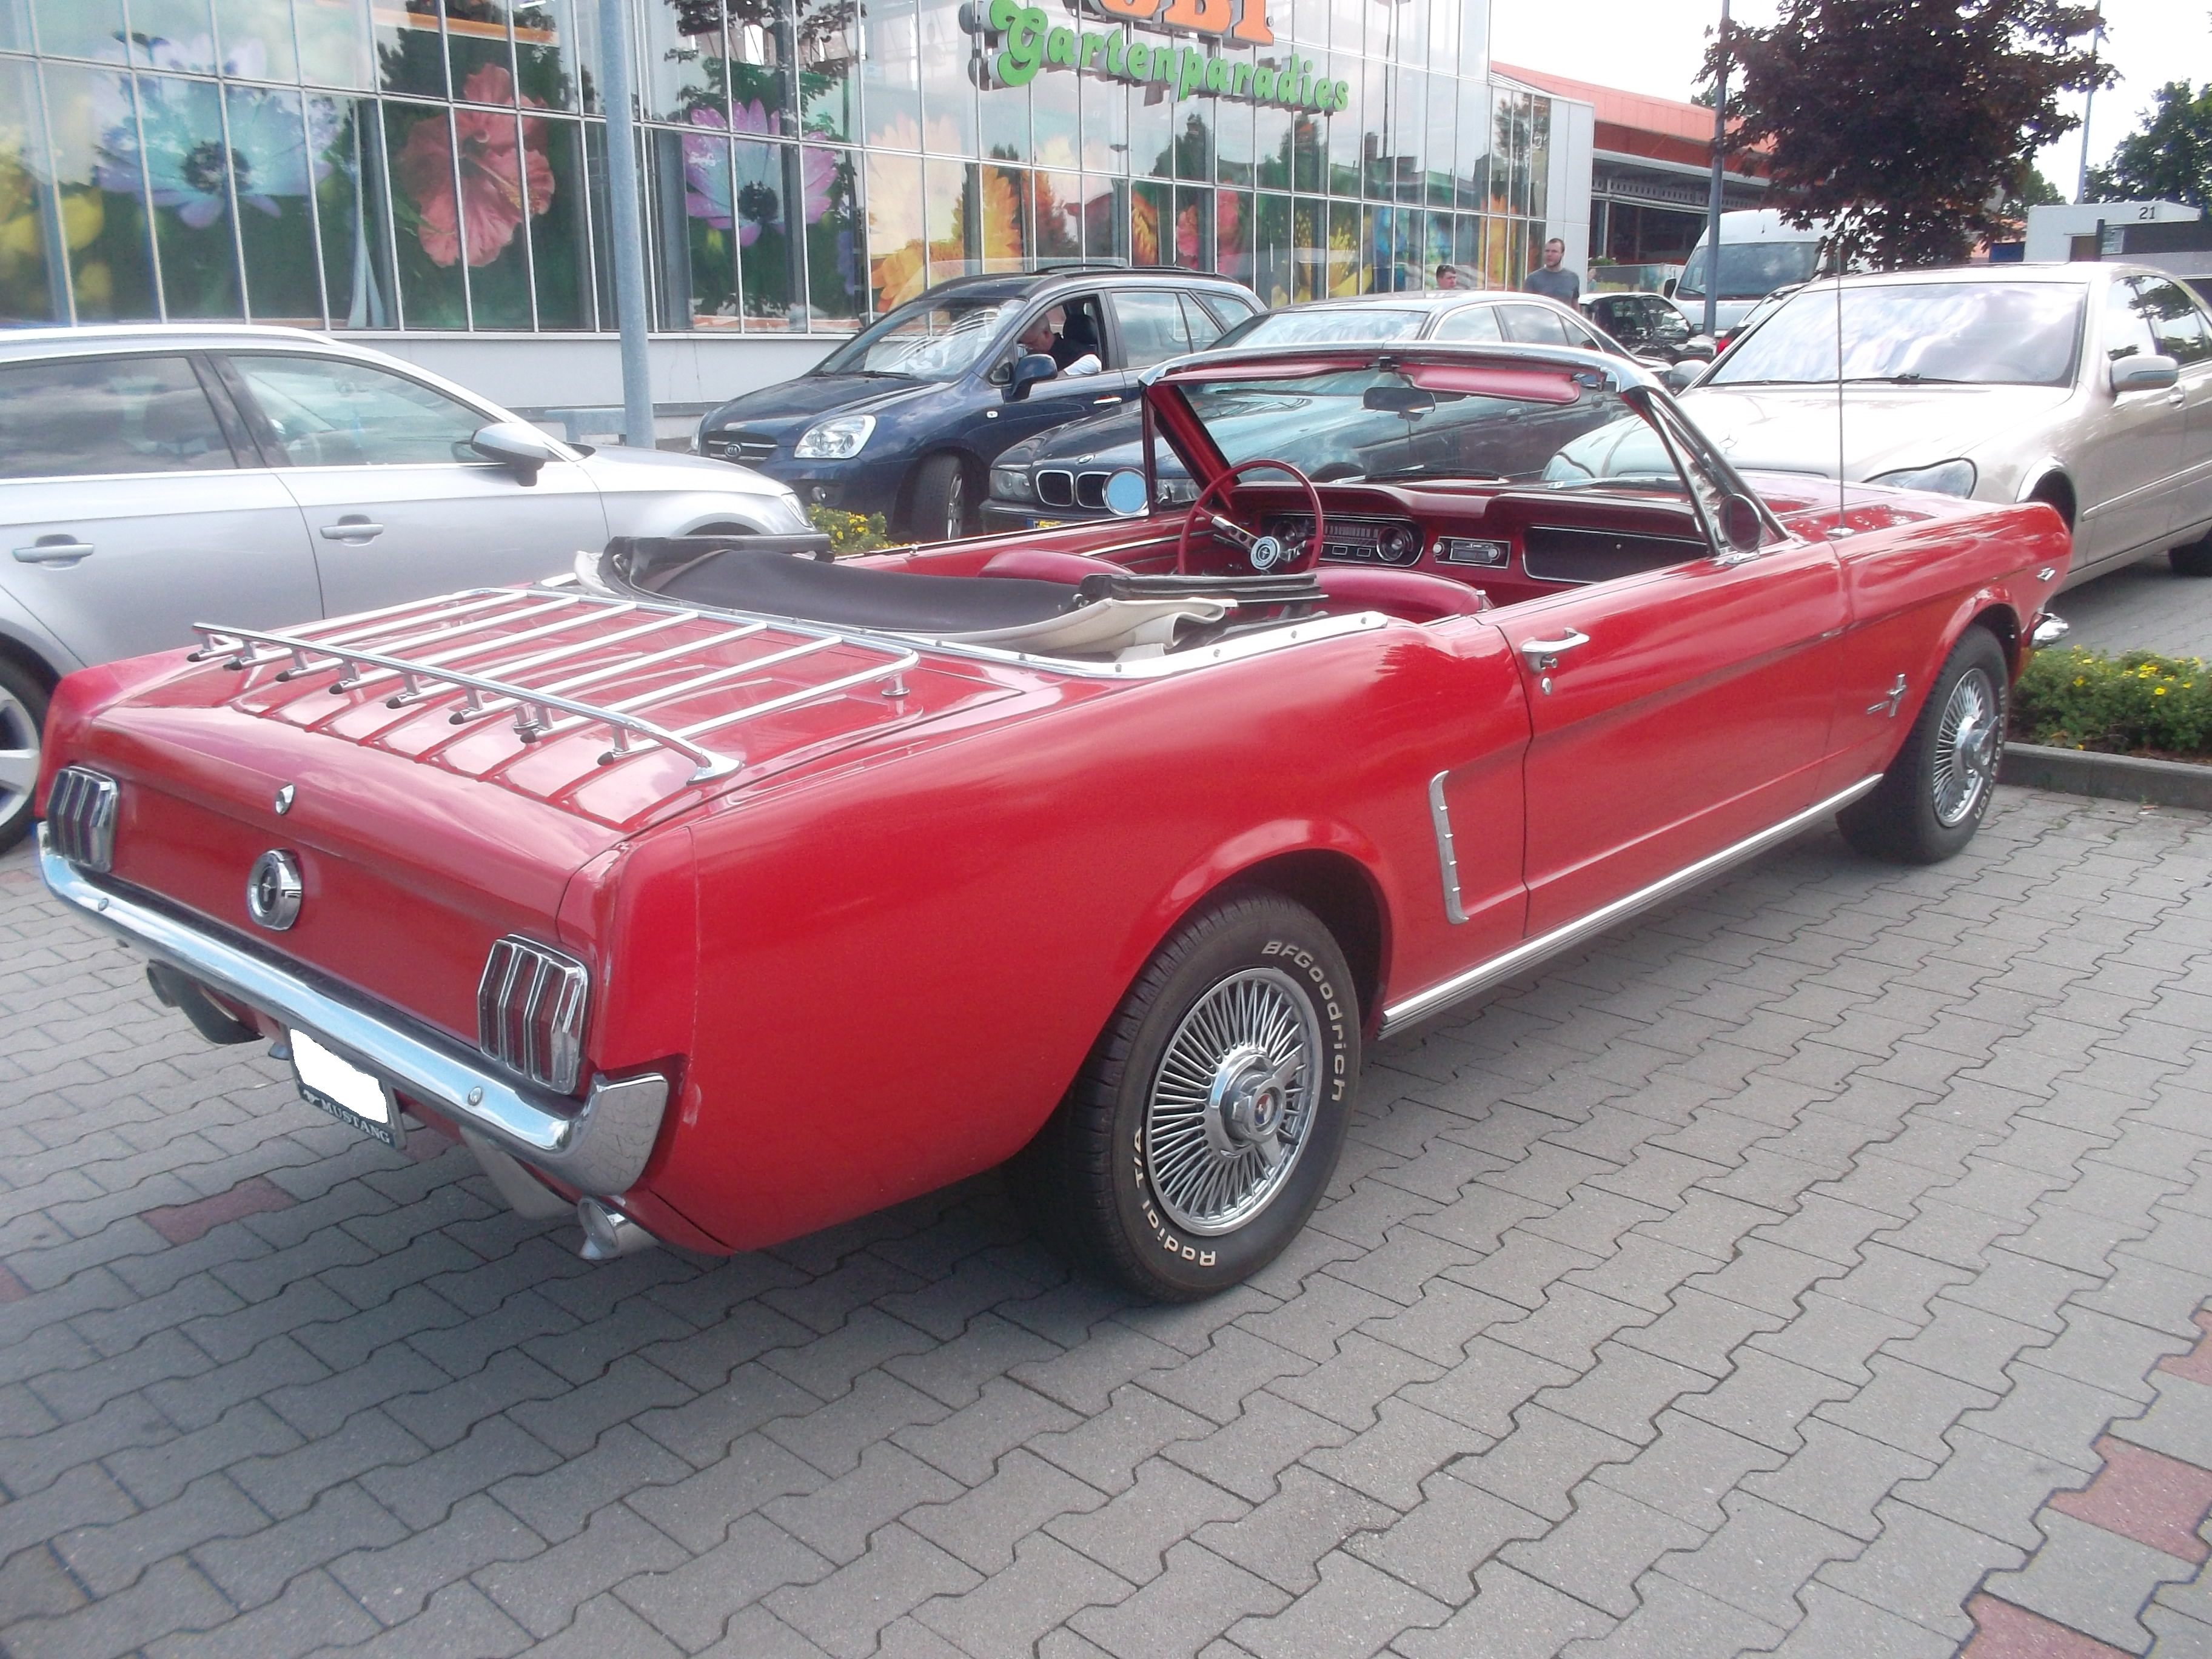 64_Ford_Mustang_Cabrio_side_(1).jpg